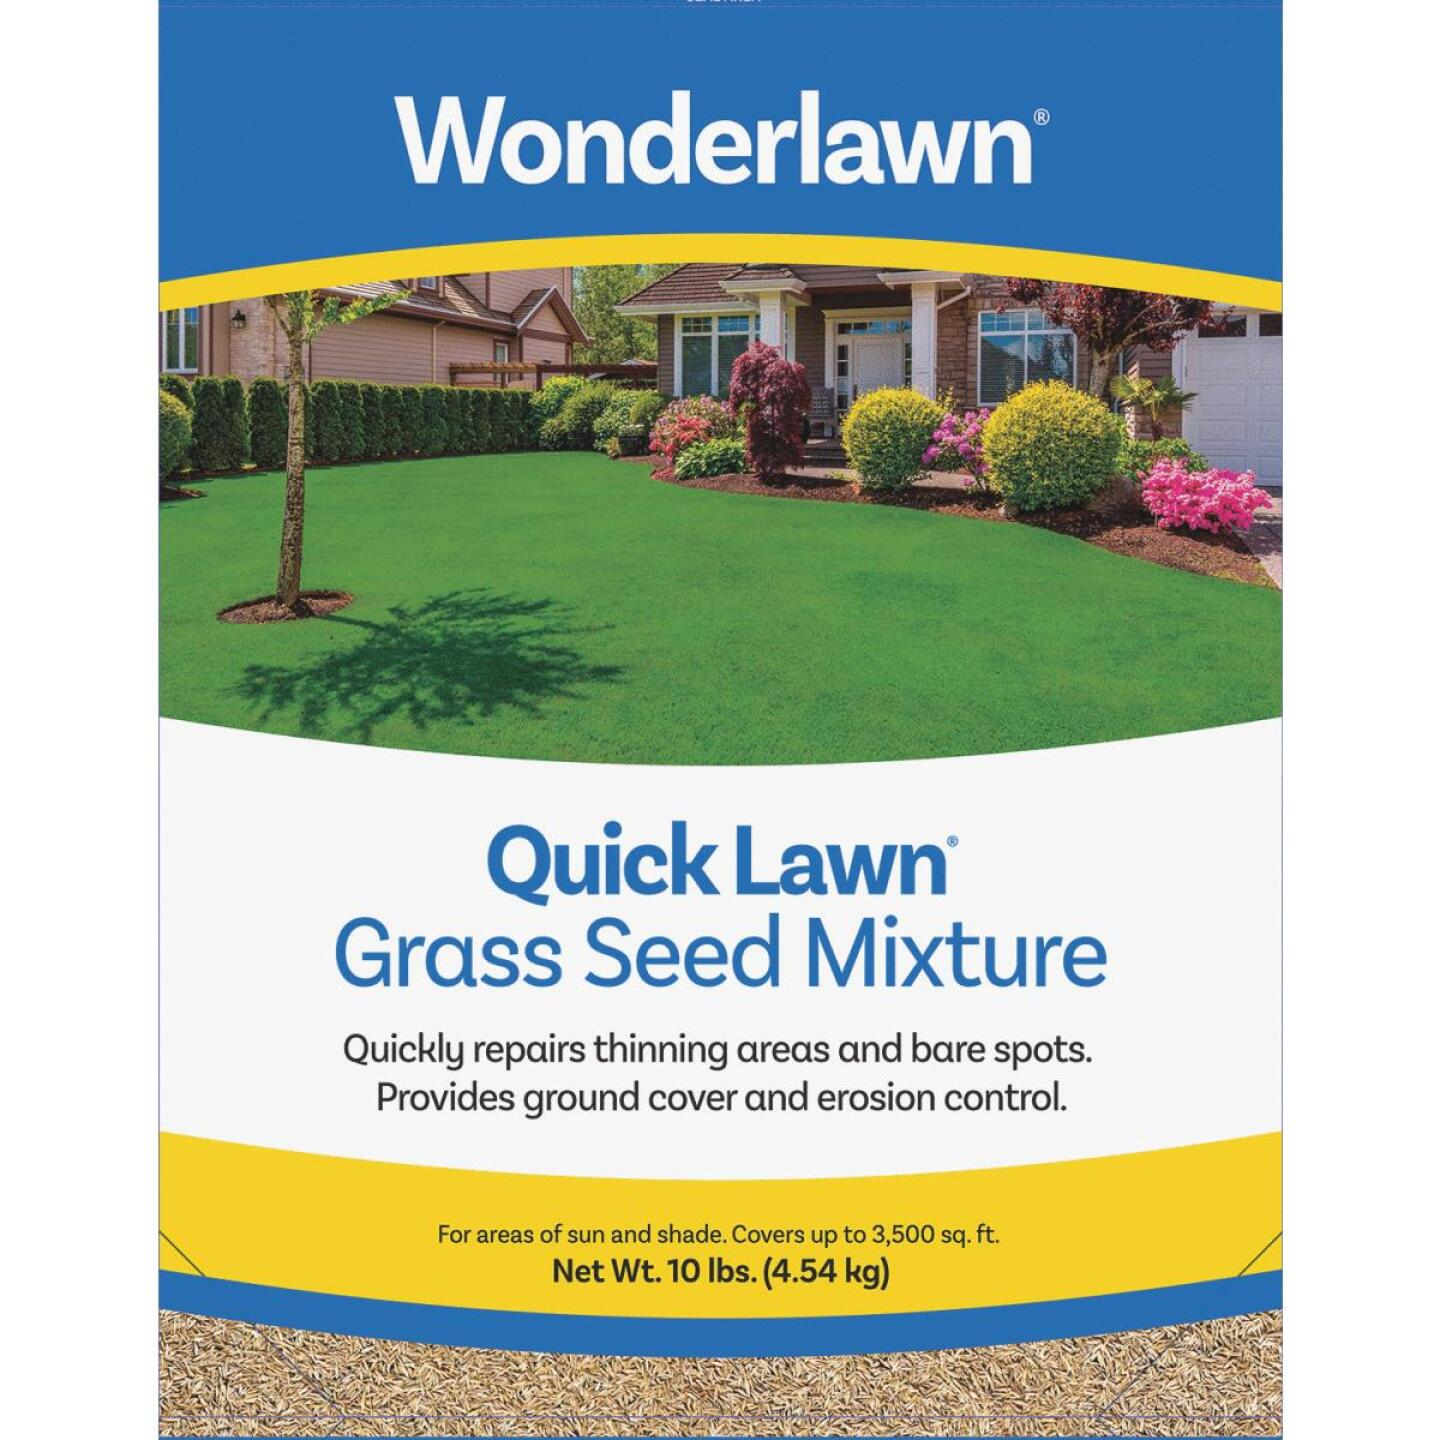 Wonderlawn Quick Lawn 10 Lb. 3000 Sq. Ft. Coverage Annual & Perennial Ryegrass Grass Seed Image 1